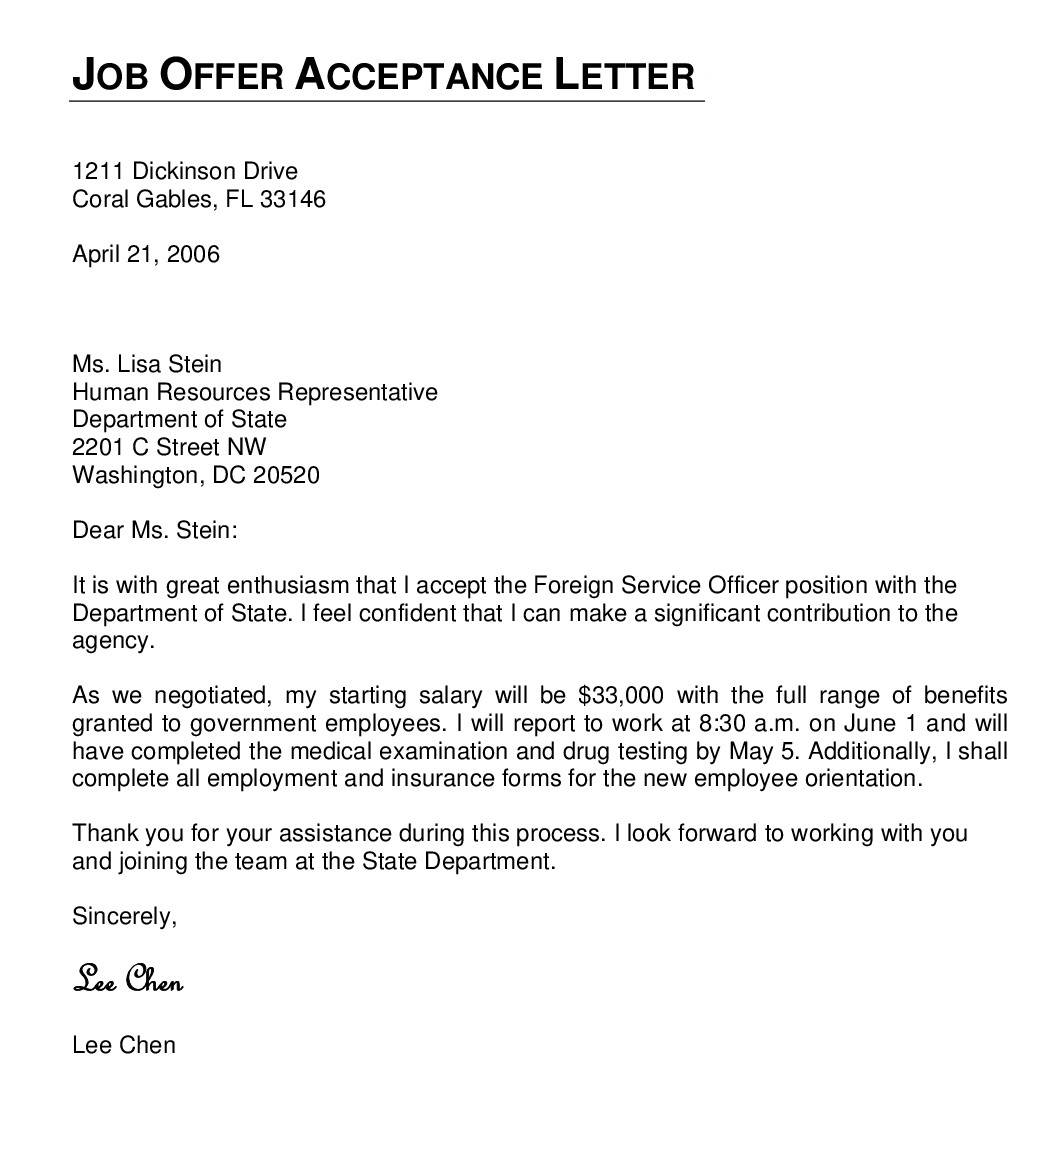 offer letters appointment letter job and business documents